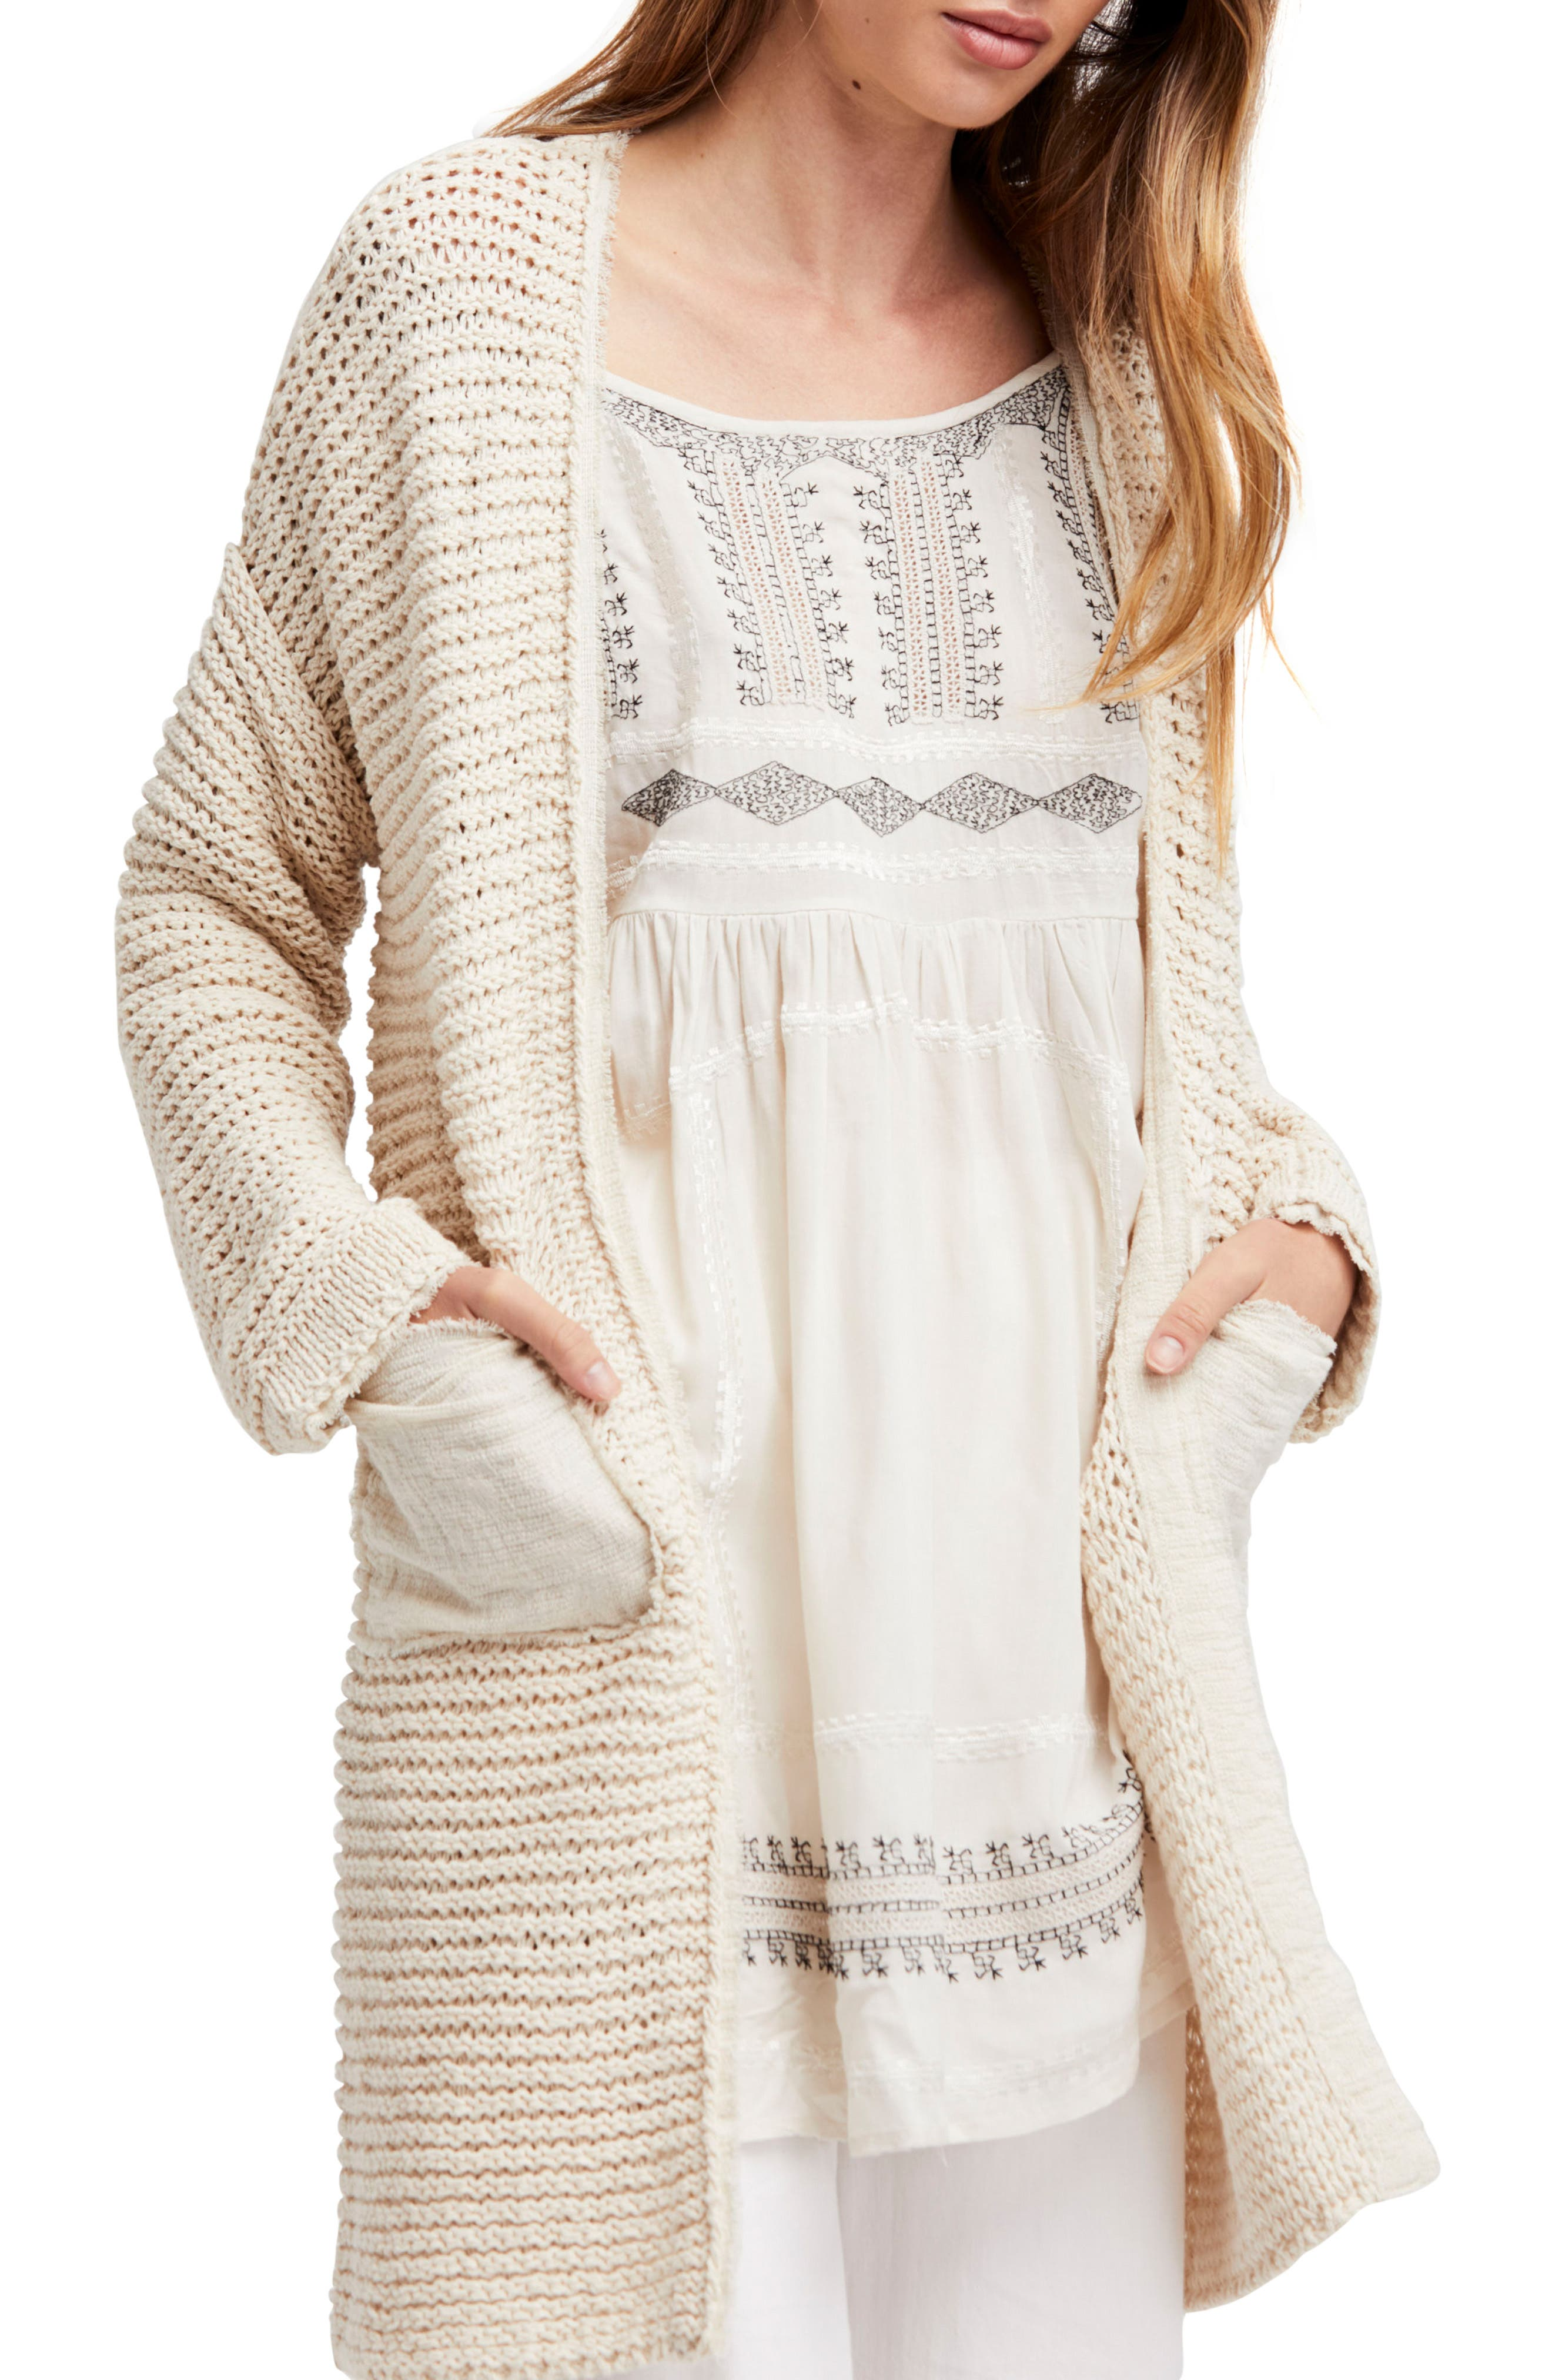 Woodstock Longline Cardigan,                         Main,                         color, Ivory